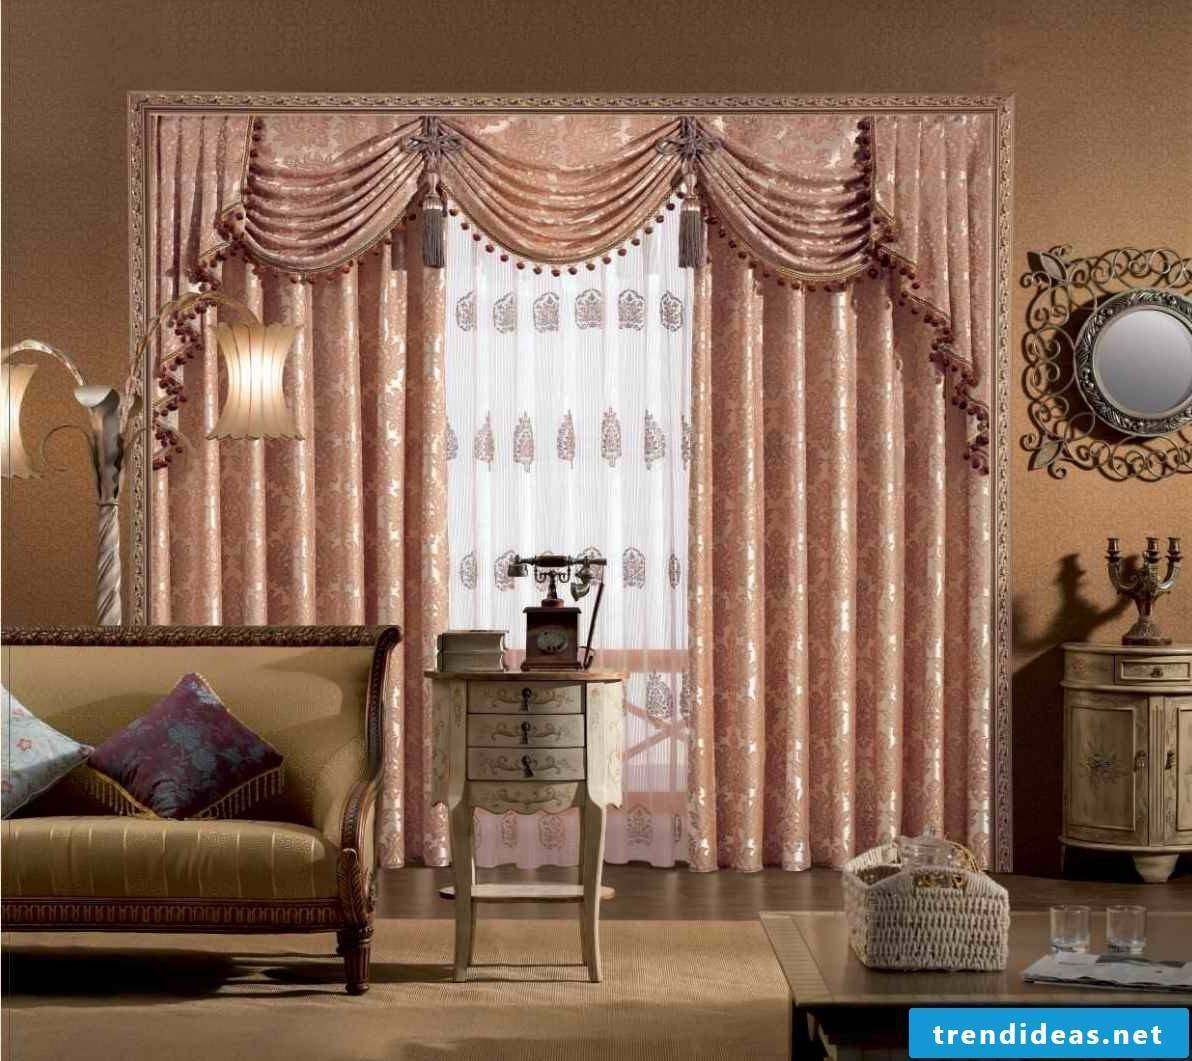 Curtains wash - our tips!